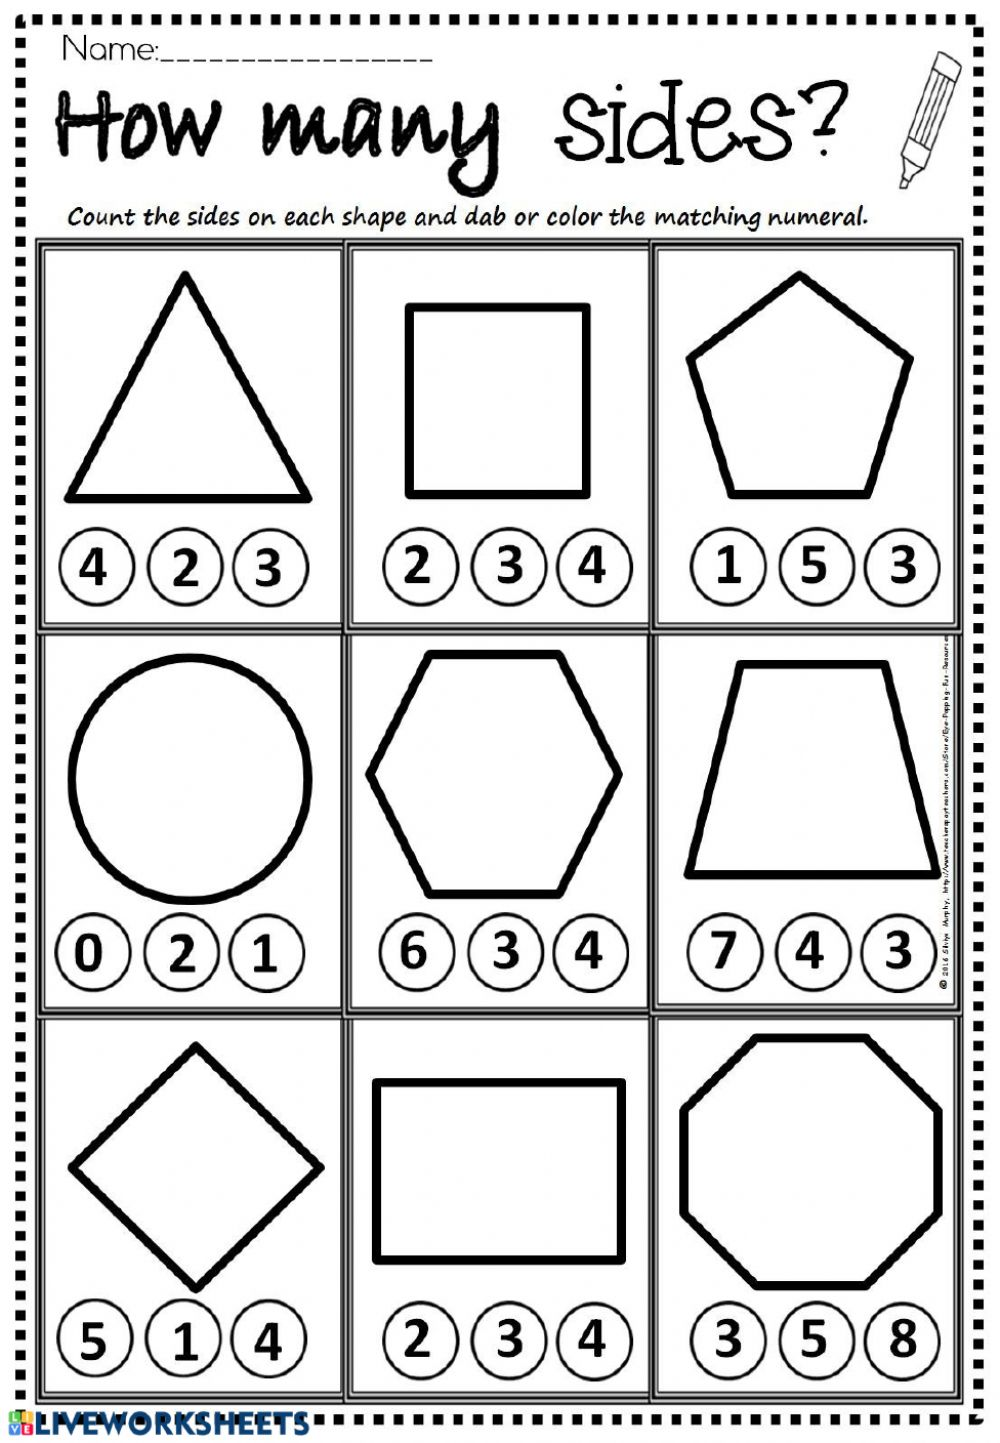 How Many Sides? - Interactive worksheet